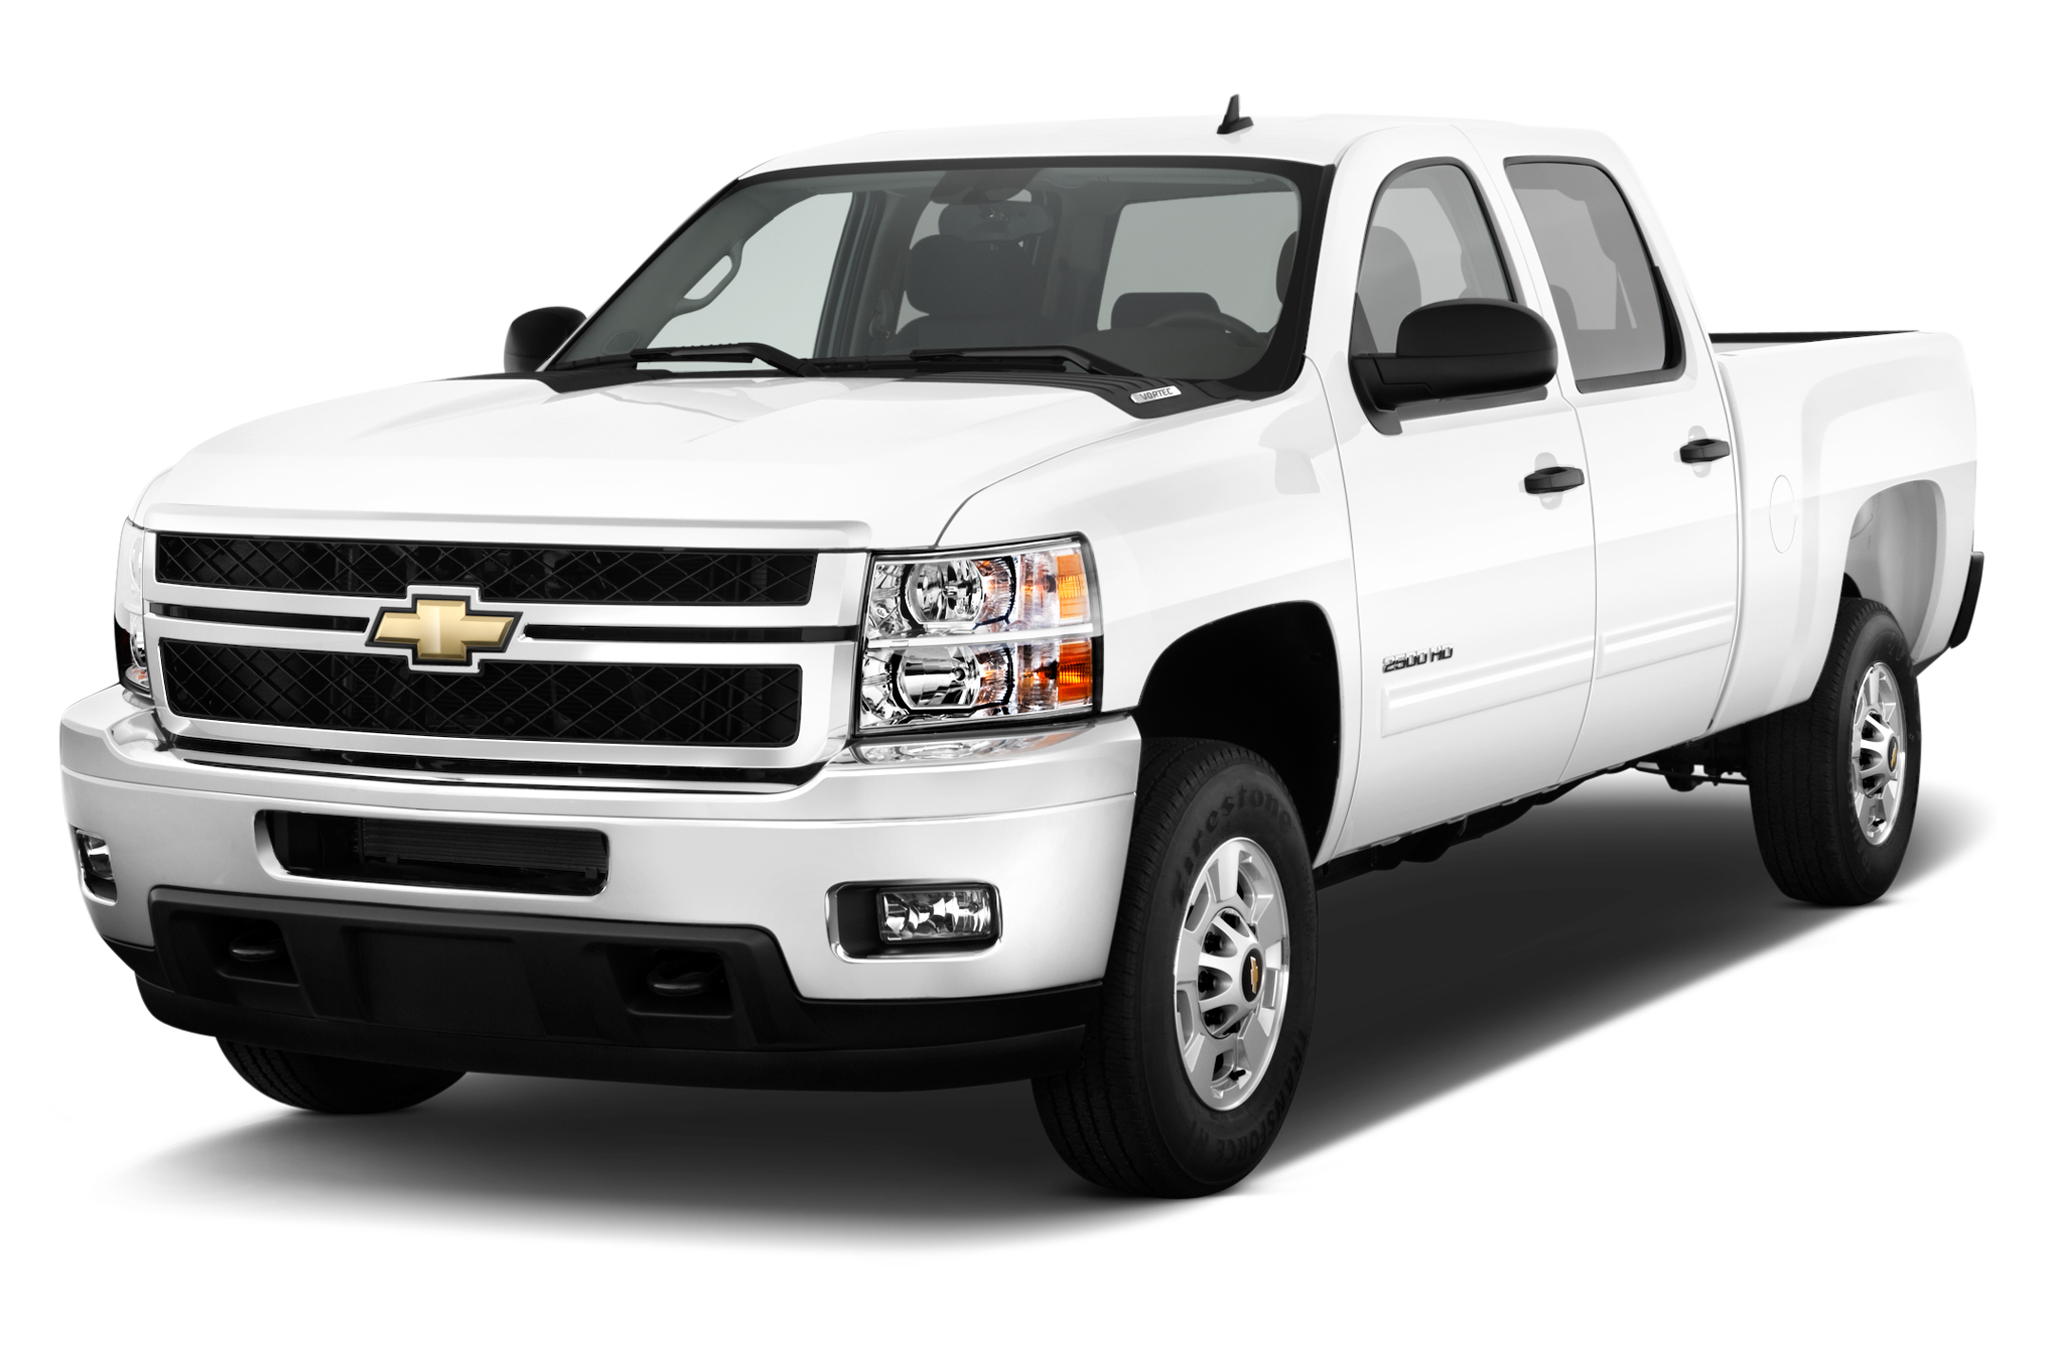 2012 chevrolet silverado gets with new appearance packages wi fi. Black Bedroom Furniture Sets. Home Design Ideas